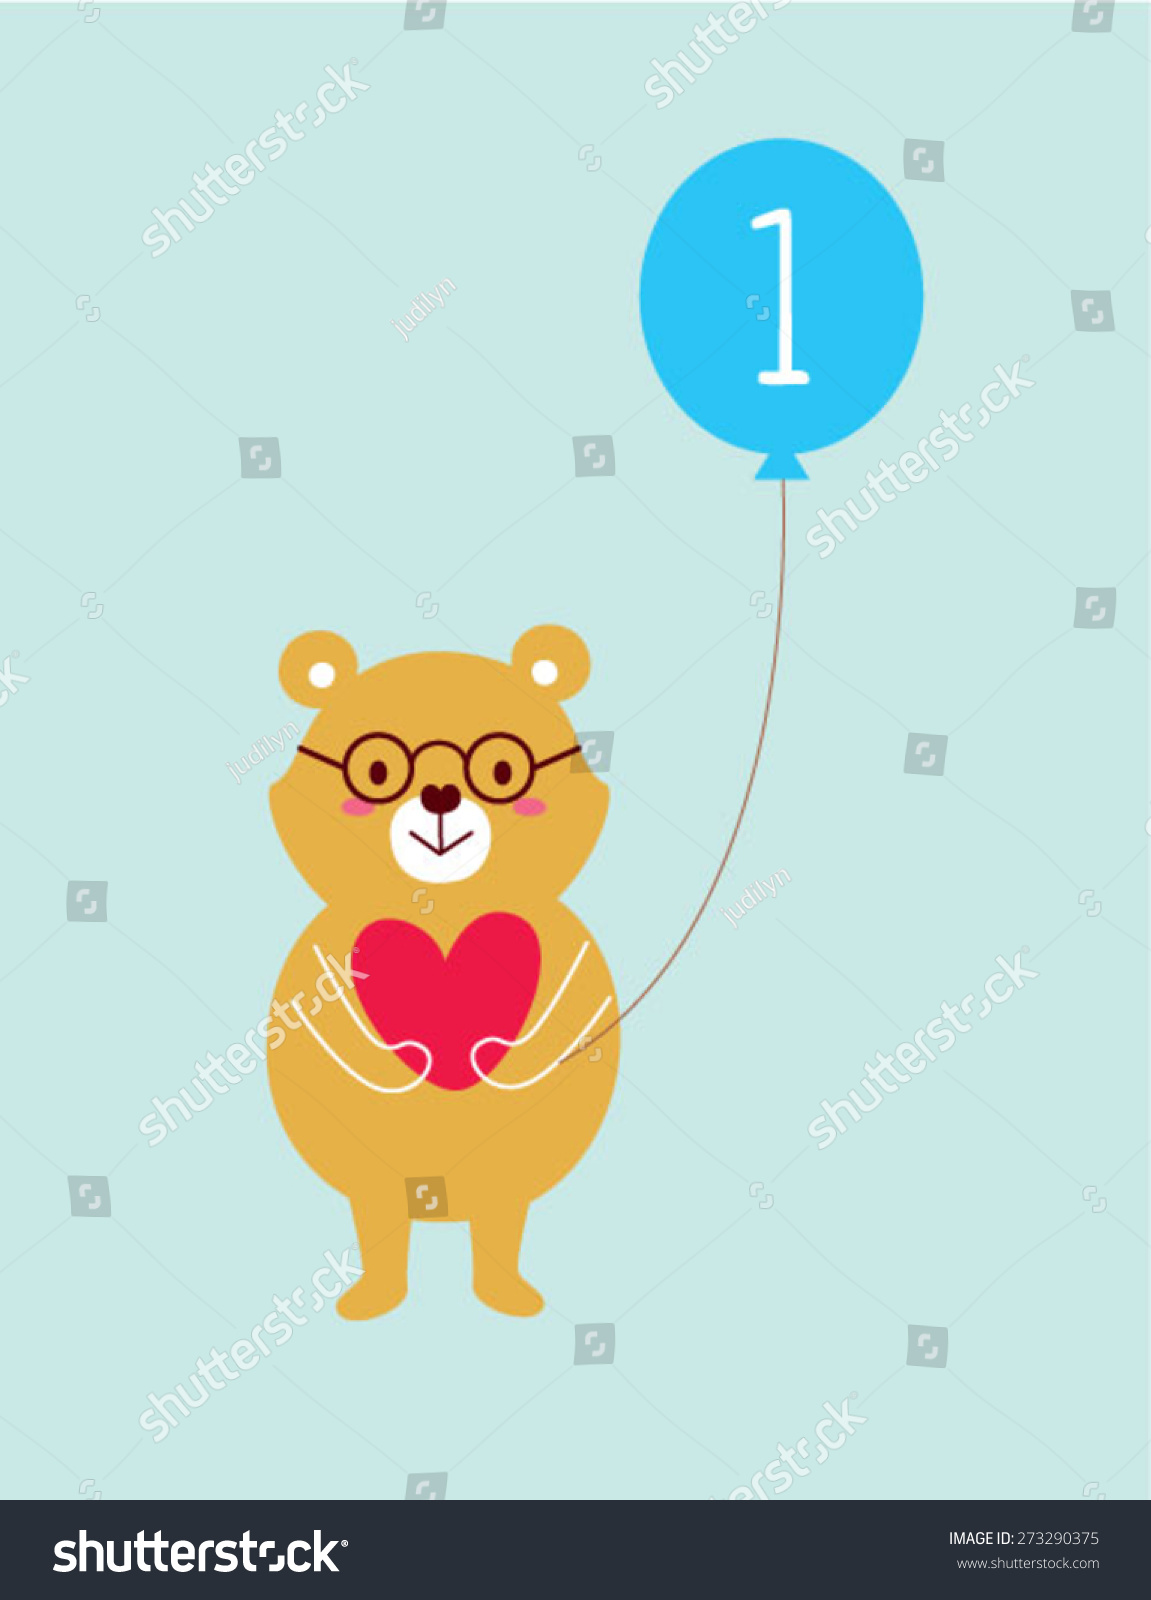 Teddy bear 1st birthday greeting card stock vector 273290375 teddy bear 1st birthday greeting card kristyandbryce Image collections